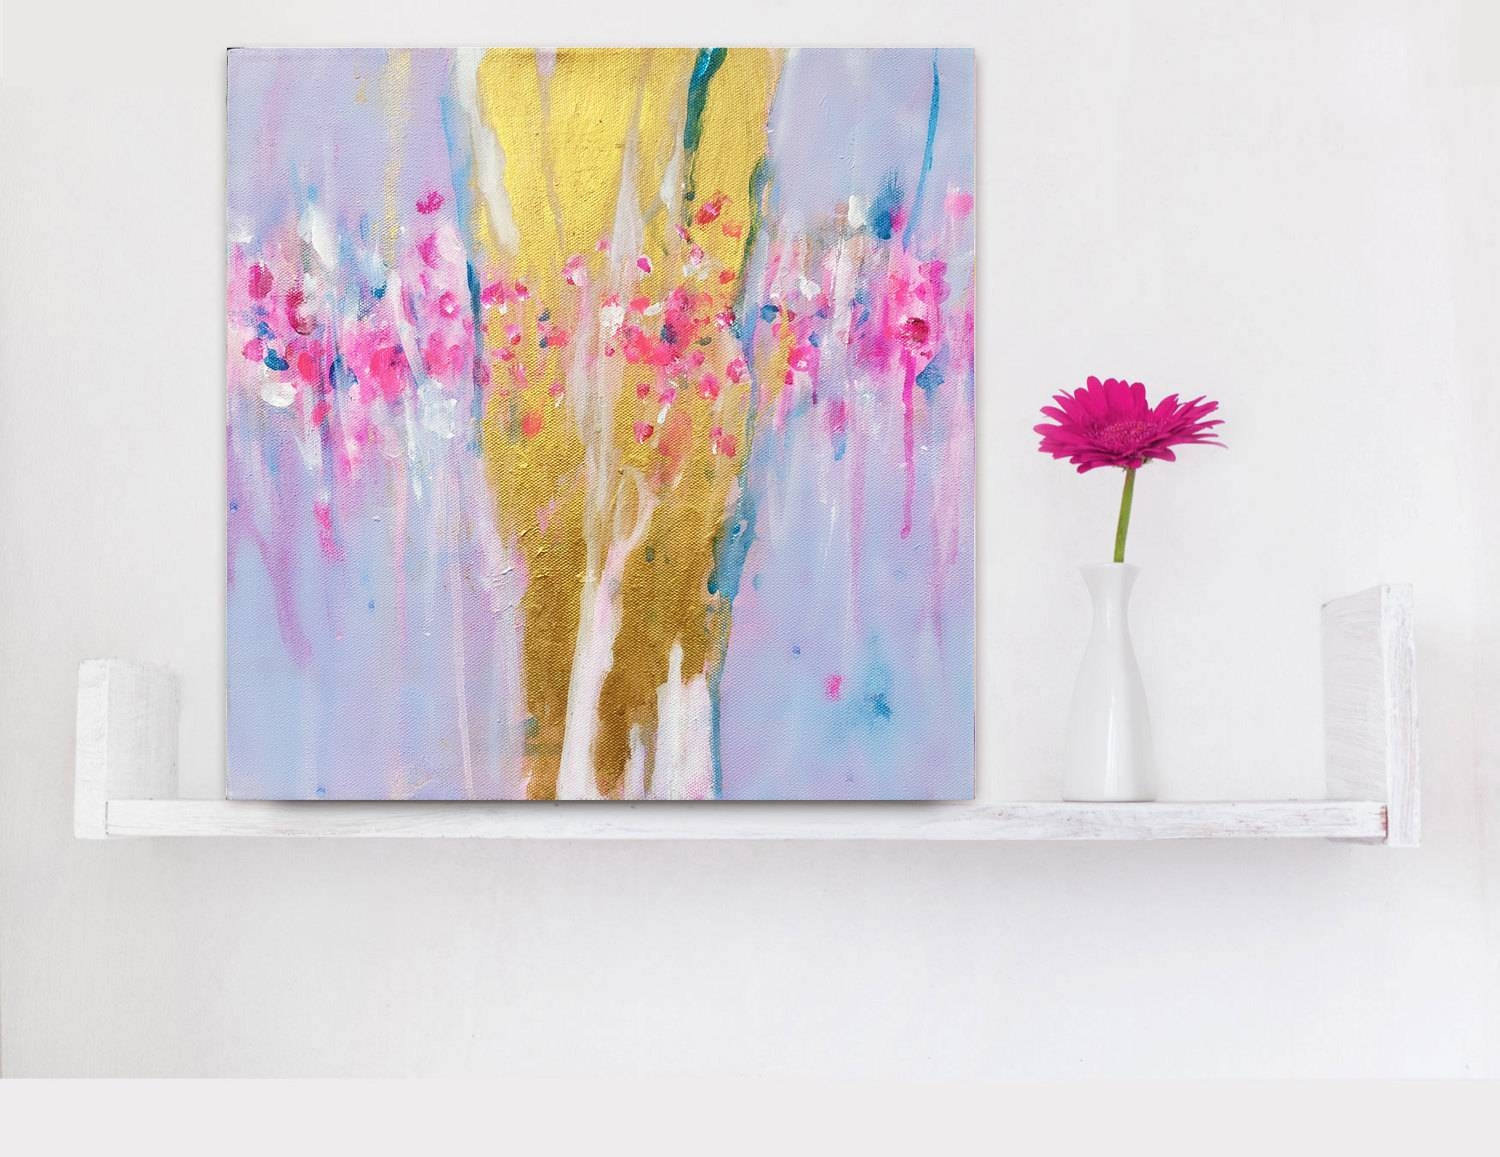 Abstract Painting Gold Pink Abstract Art Small Canvas 12x12 Inside Latest Small Canvas Wall Art (View 11 of 20)